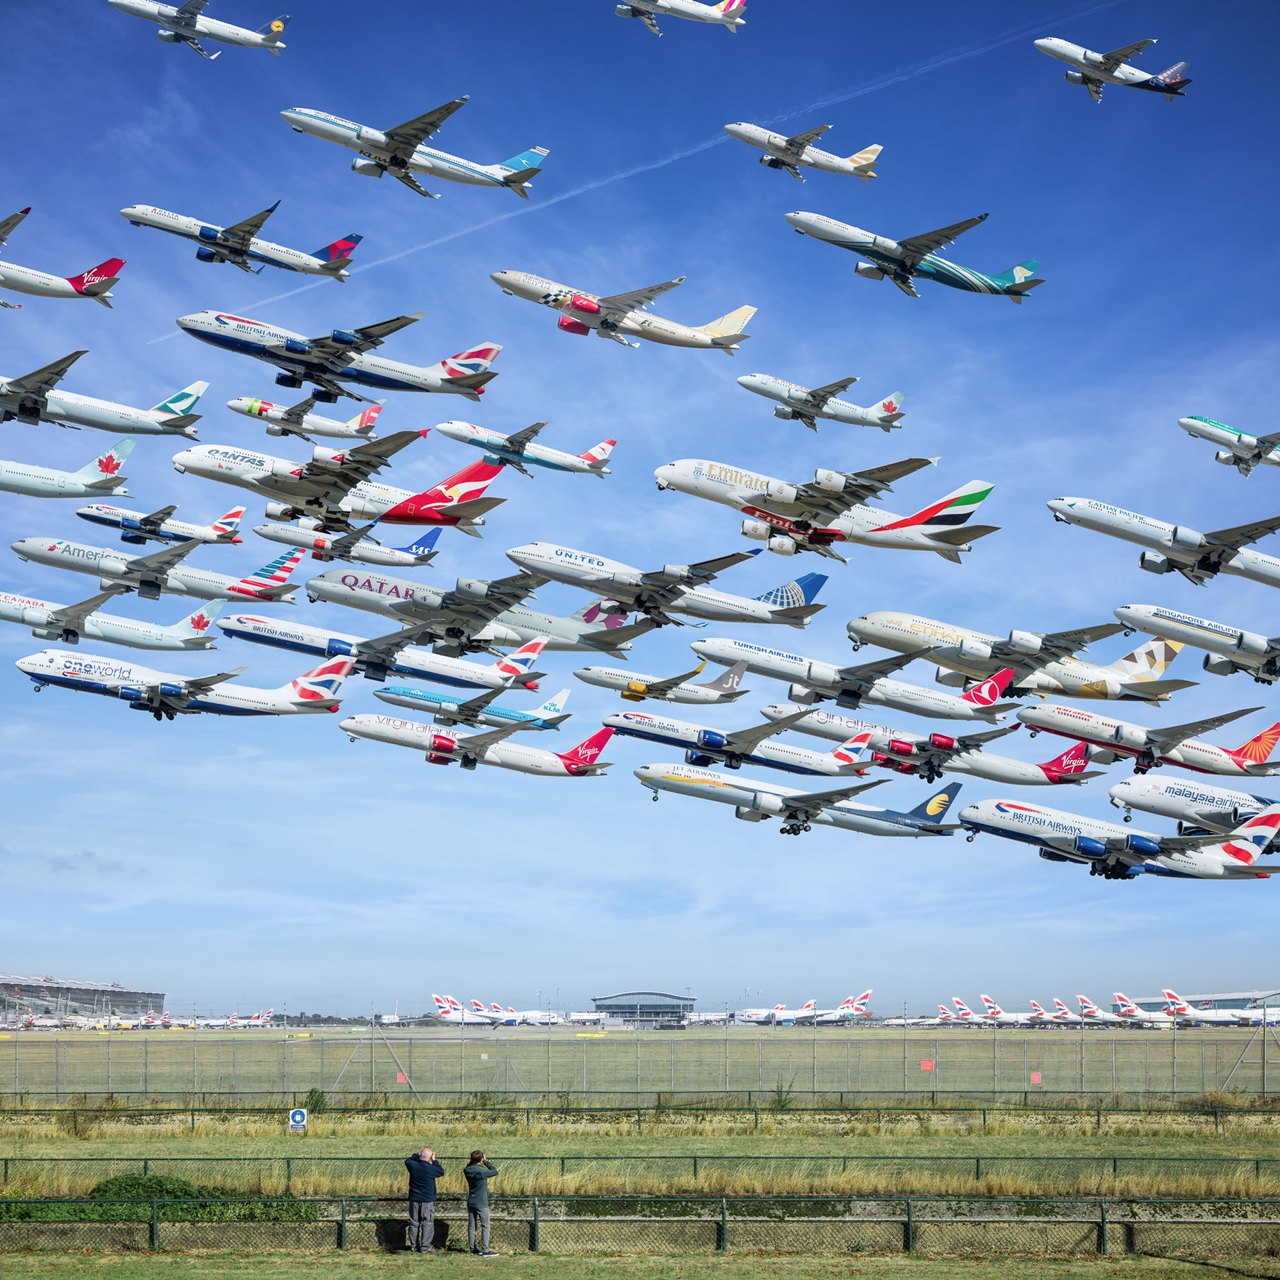 aeroportcity-or-can-planes-fly-in-flocks-12